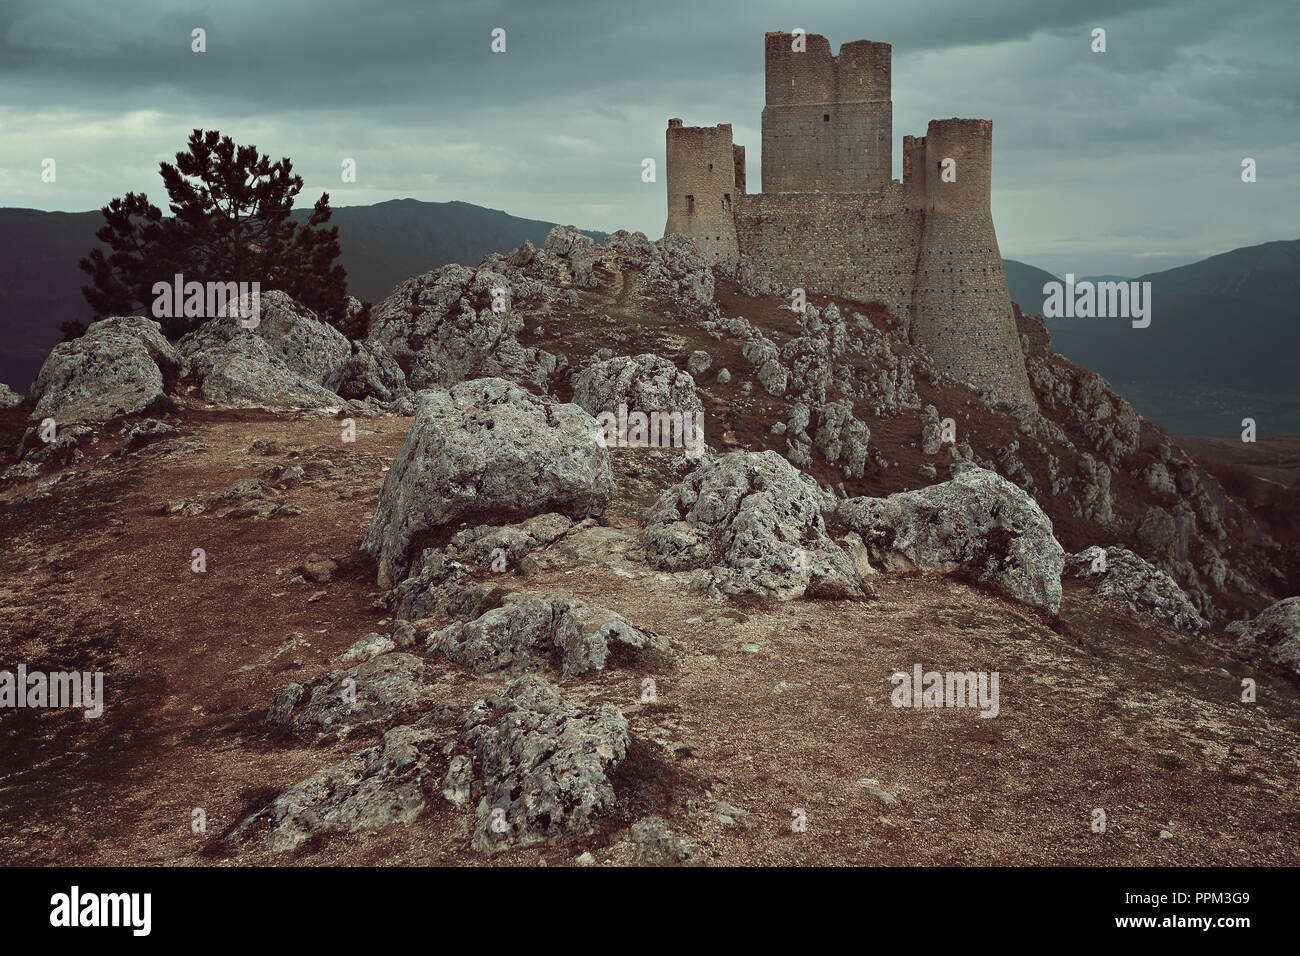 High castle of Calascio. Abruzzo, Italy - Stock Image